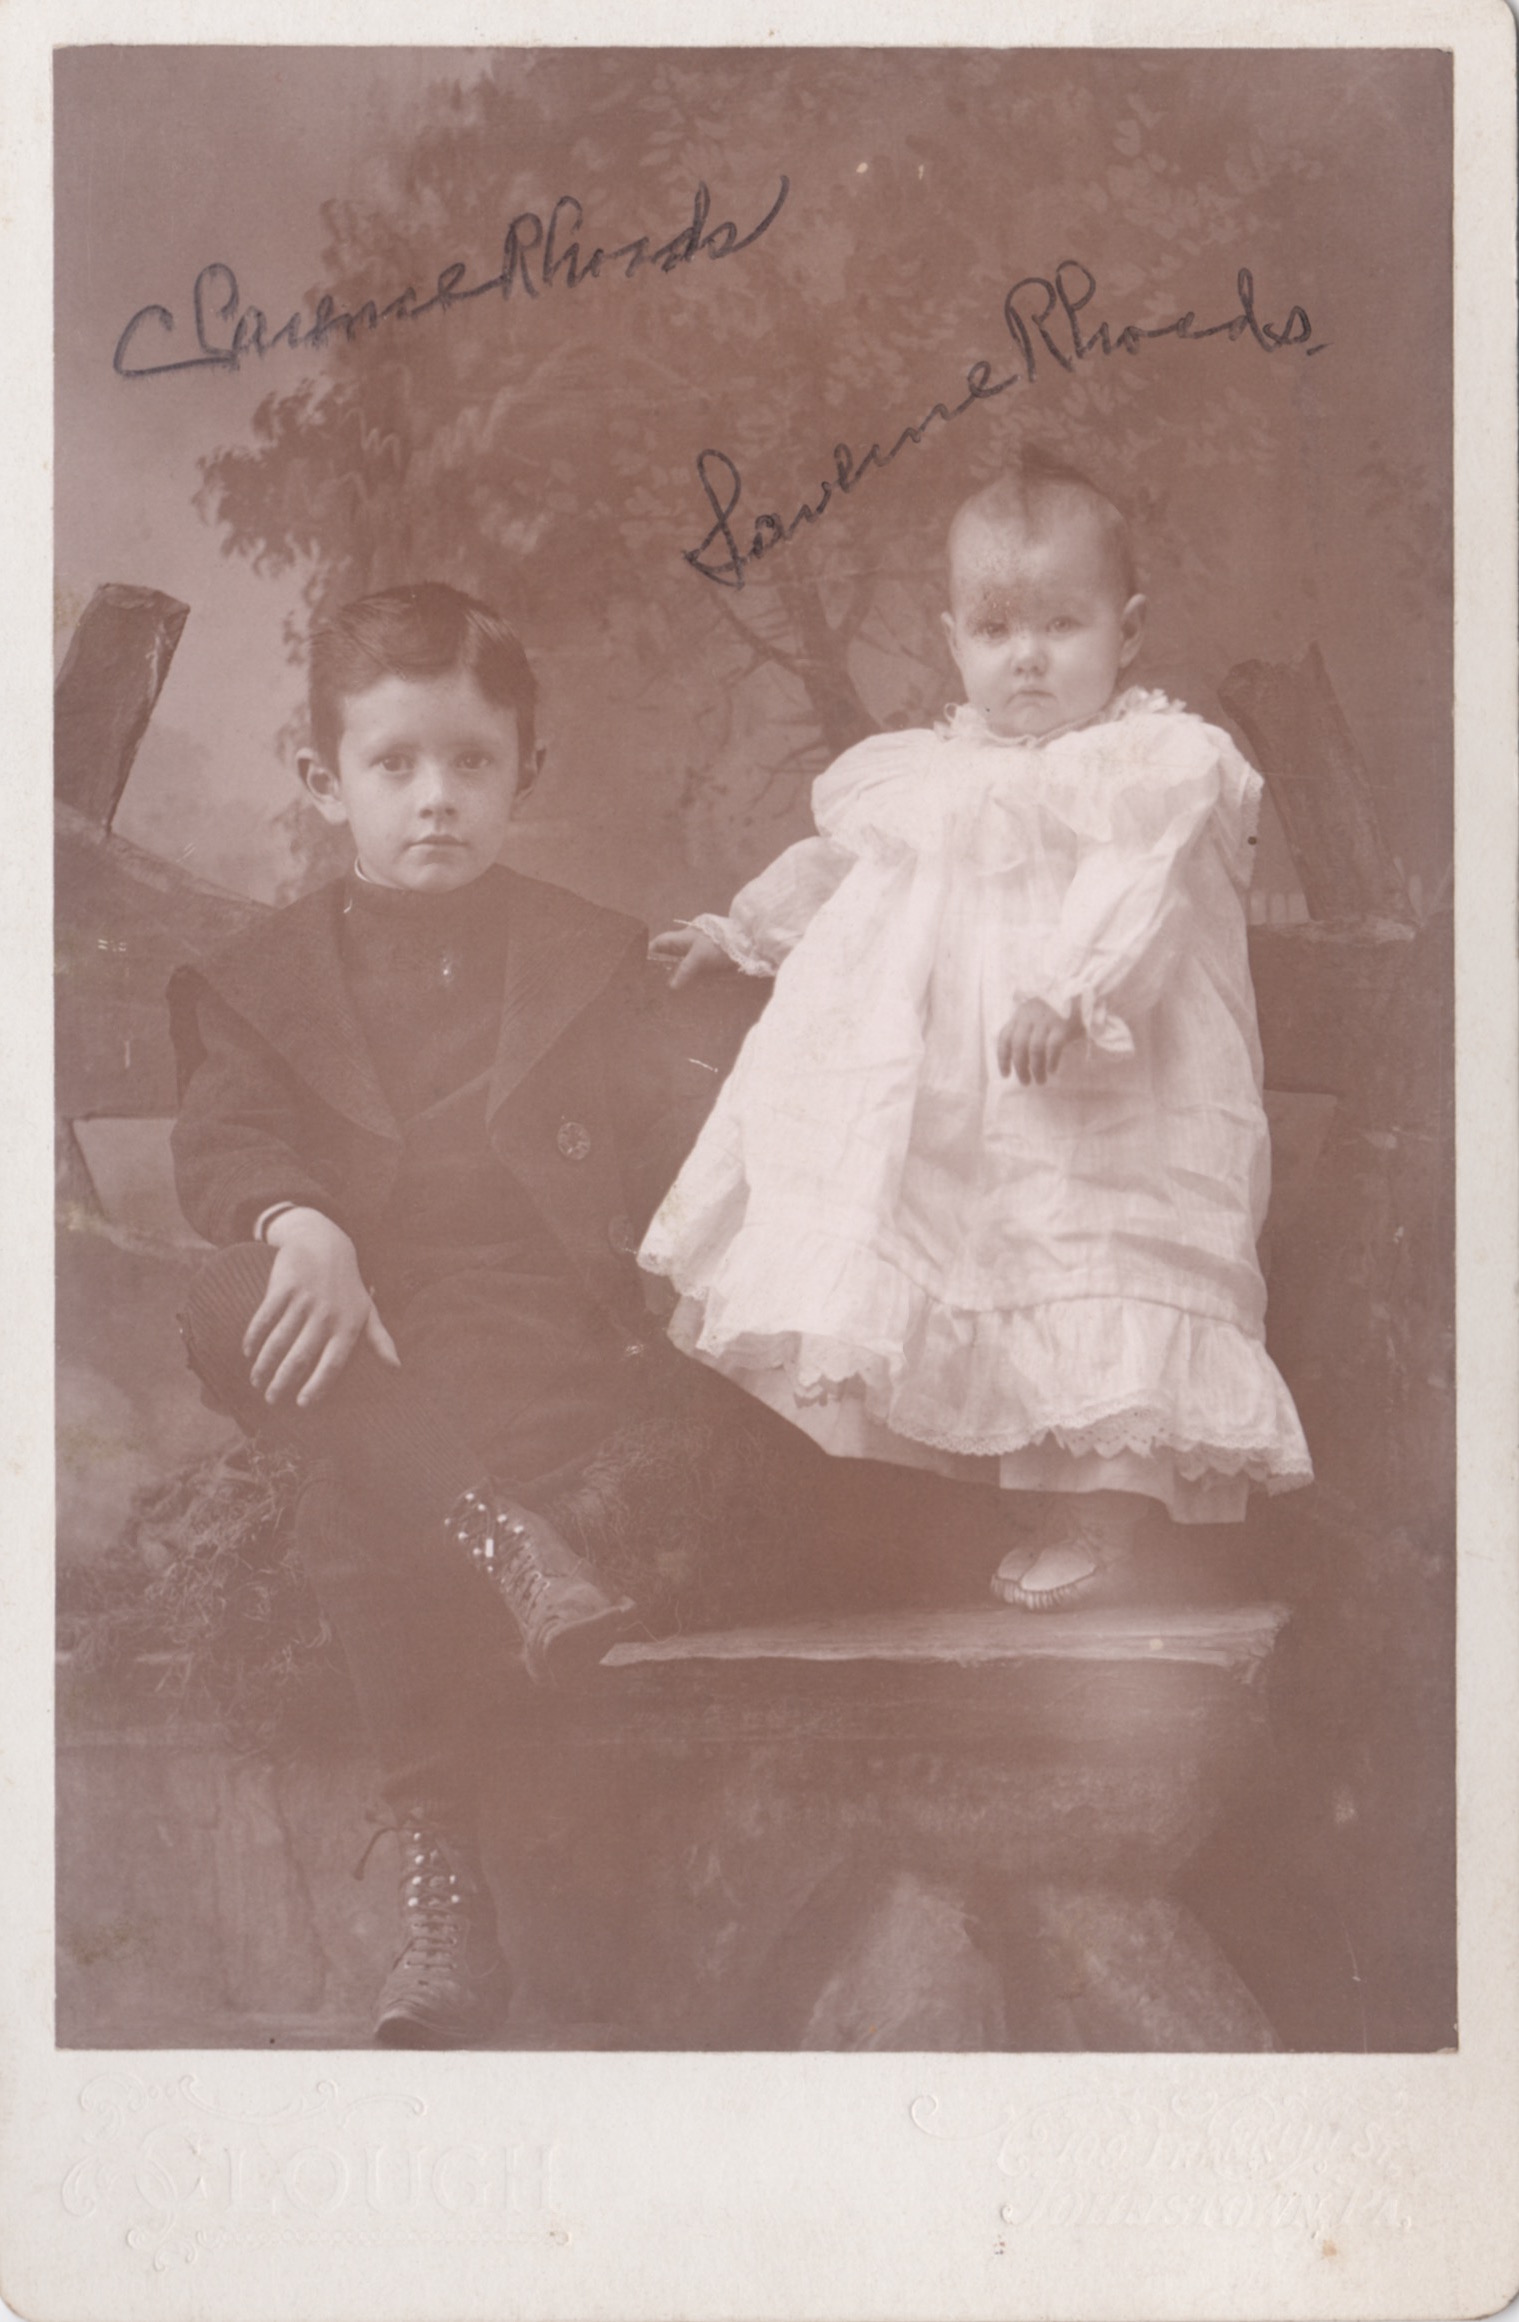 Laverne Rhoads with her older and only sibling,  Clarence O. Rhoads (1893-1964) .